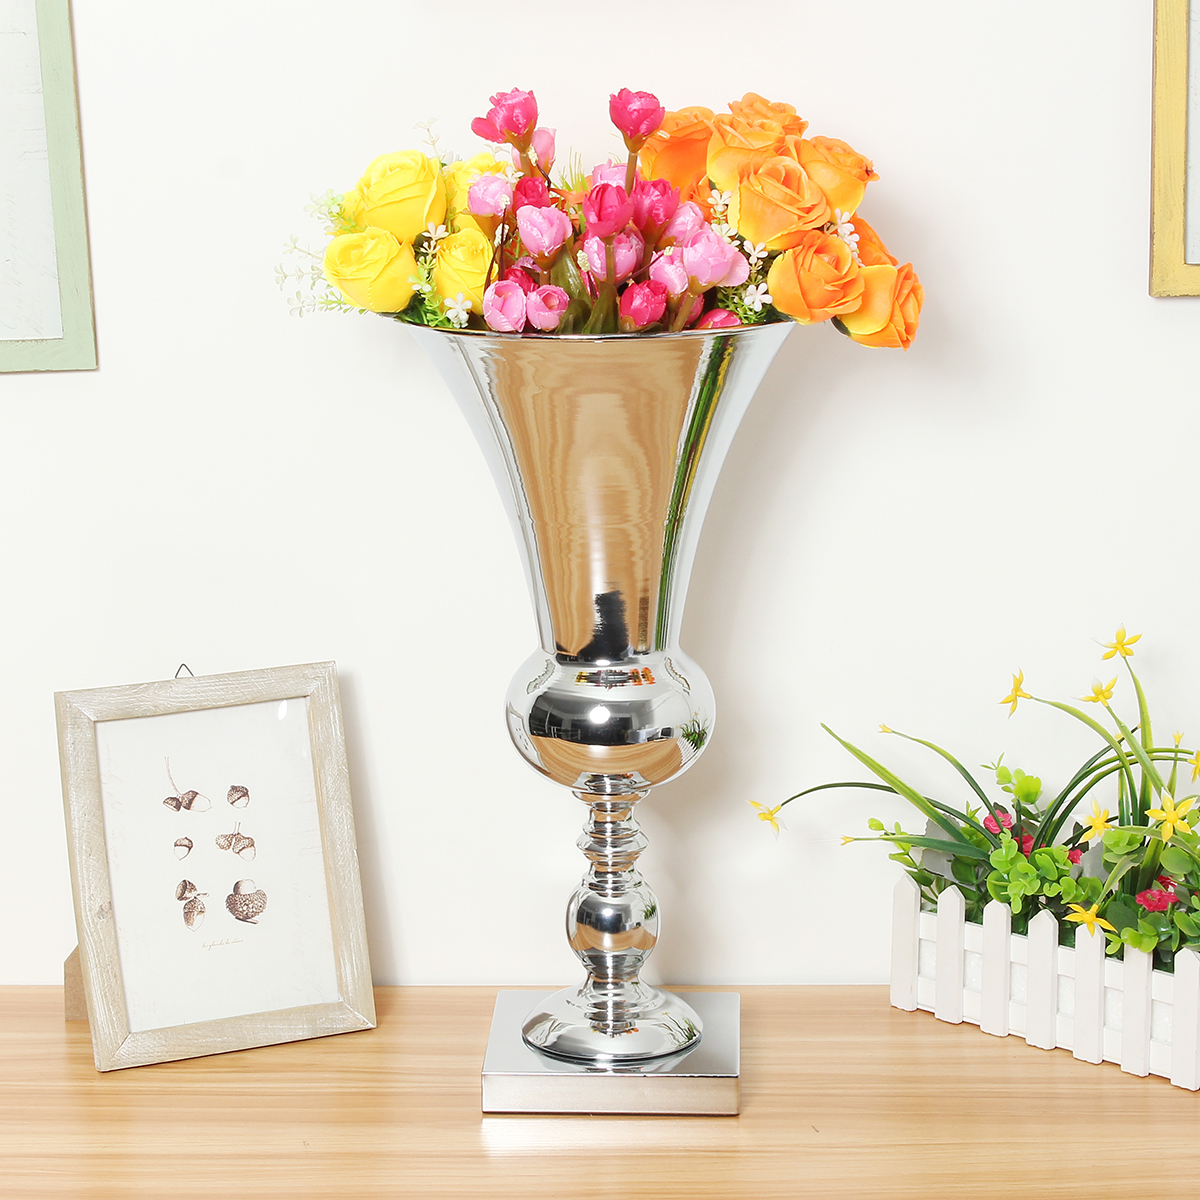 50cm Iron Luxury Flower Vase Display Wedding Table Centrepiece Home Party Decor Silver